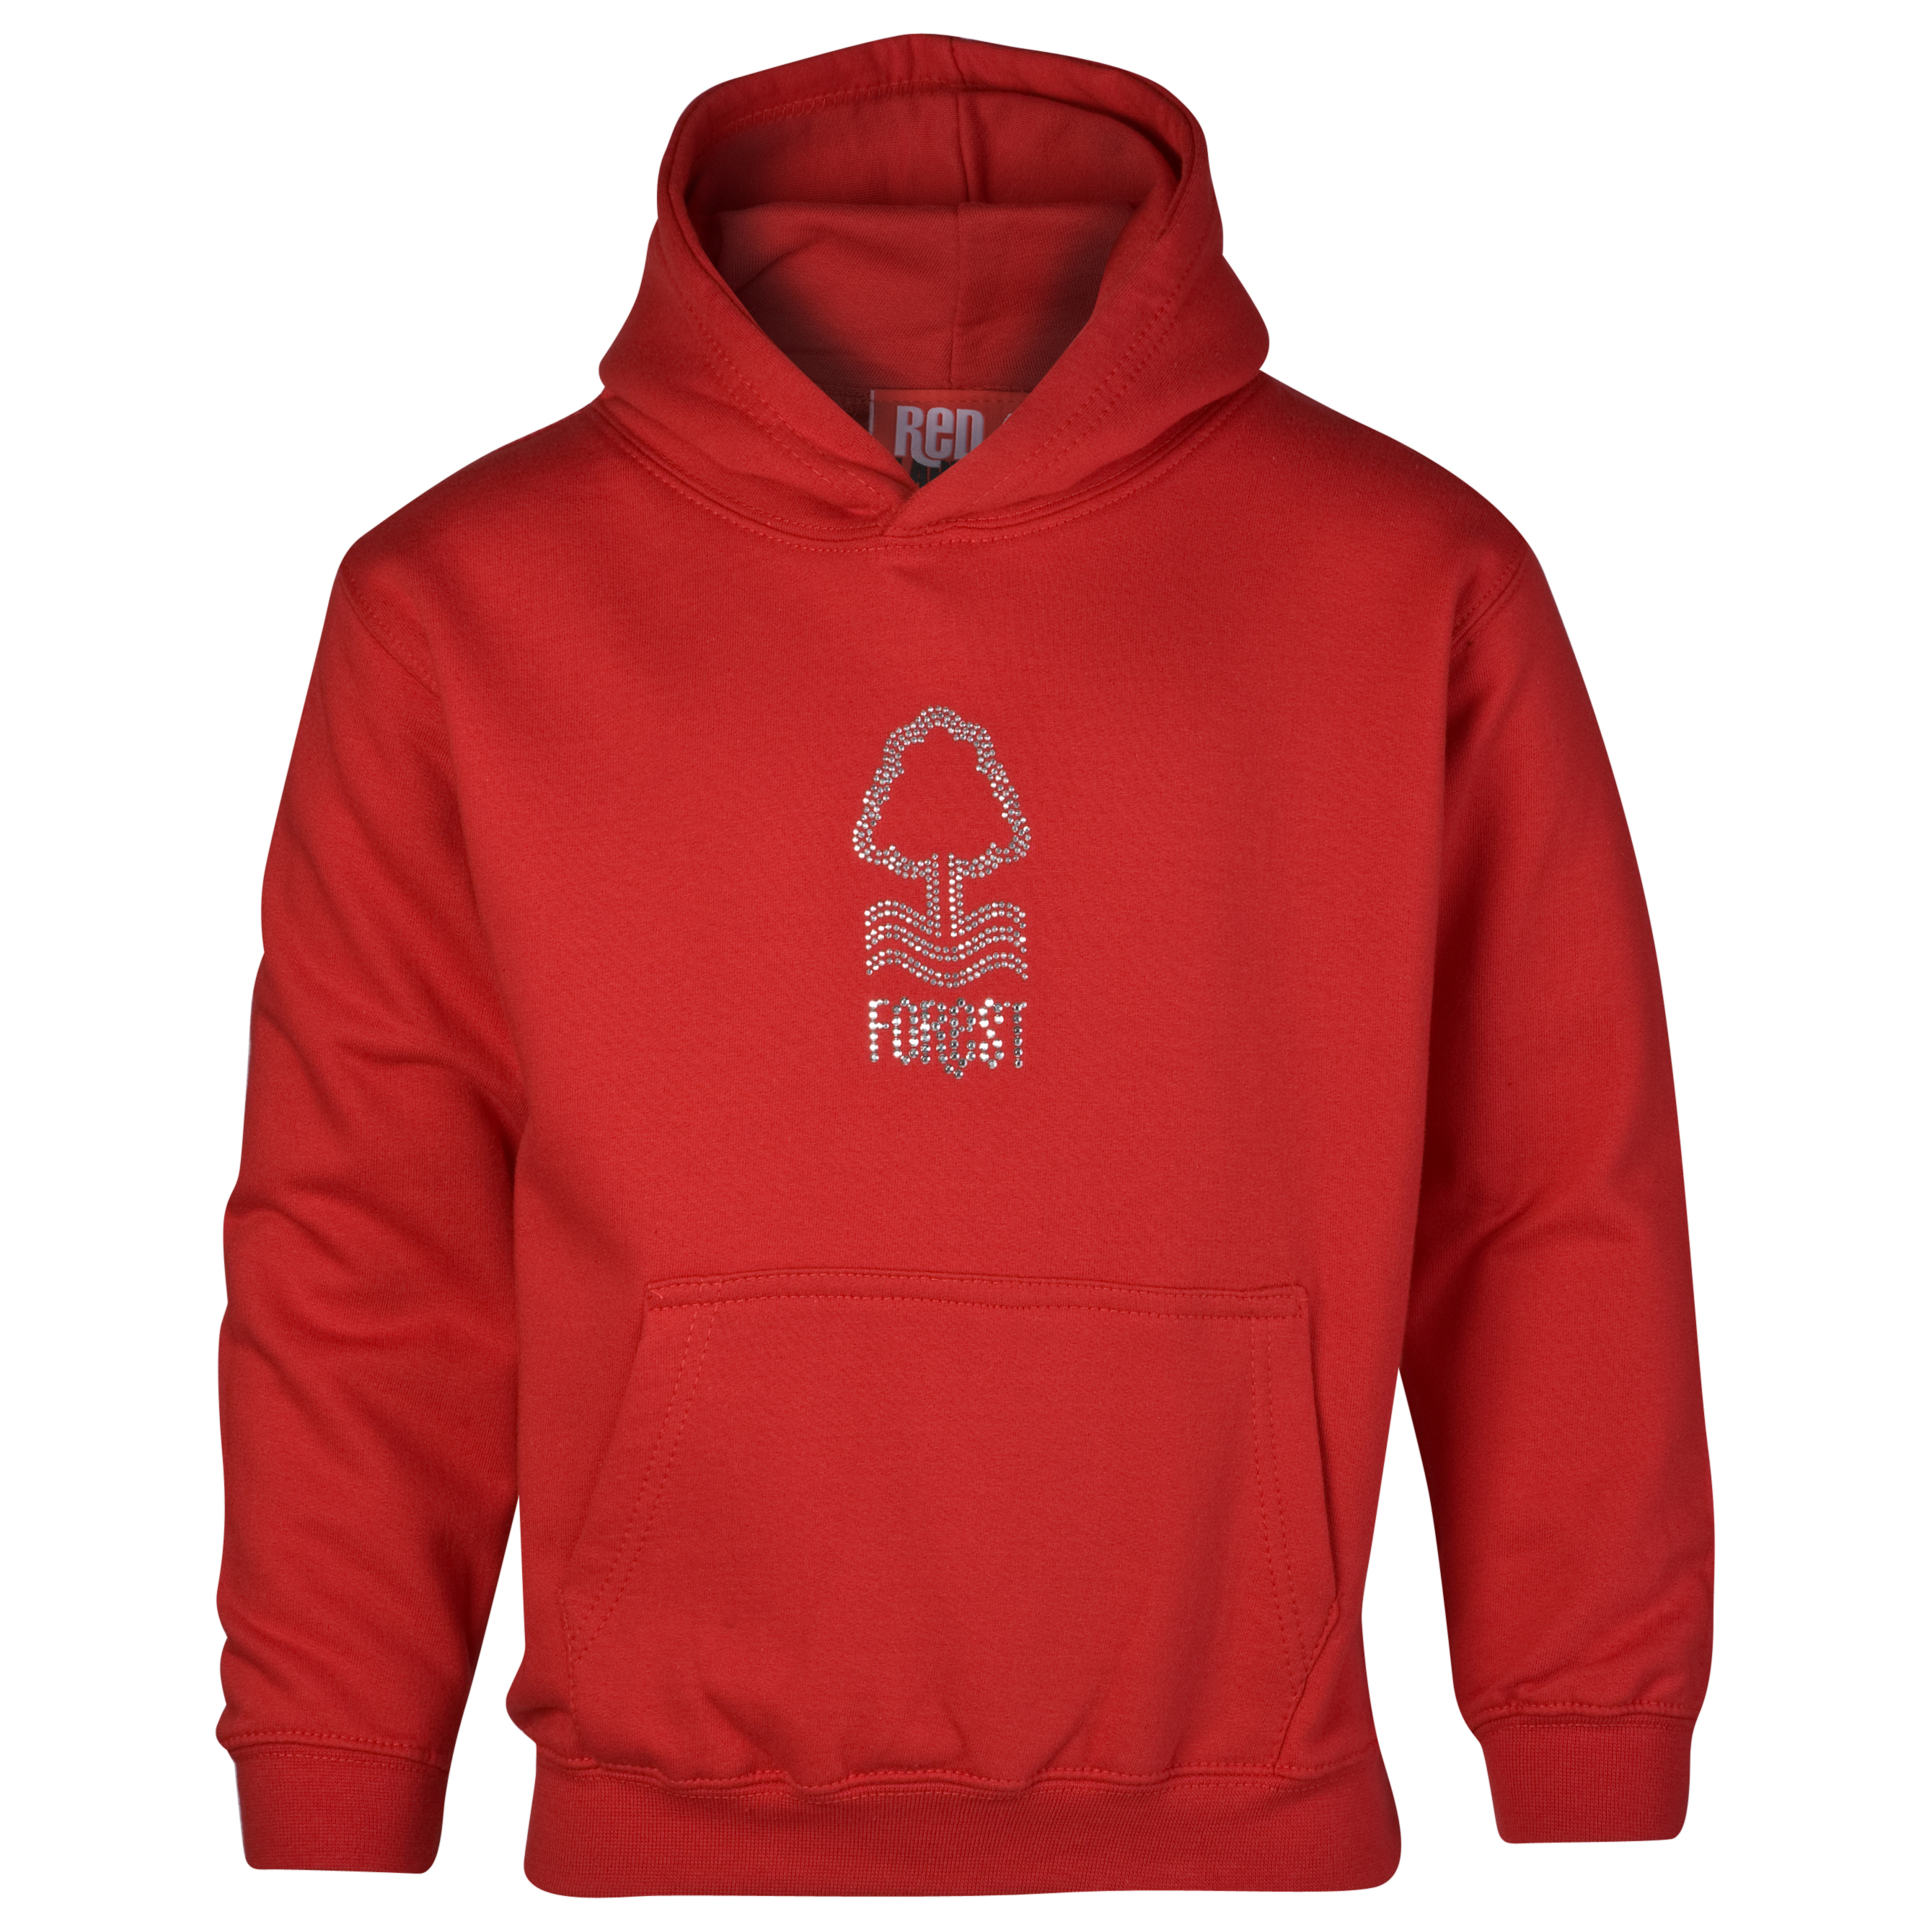 Nottingham Forest Essential Rhinestone Hoodie - Red - Older Girls